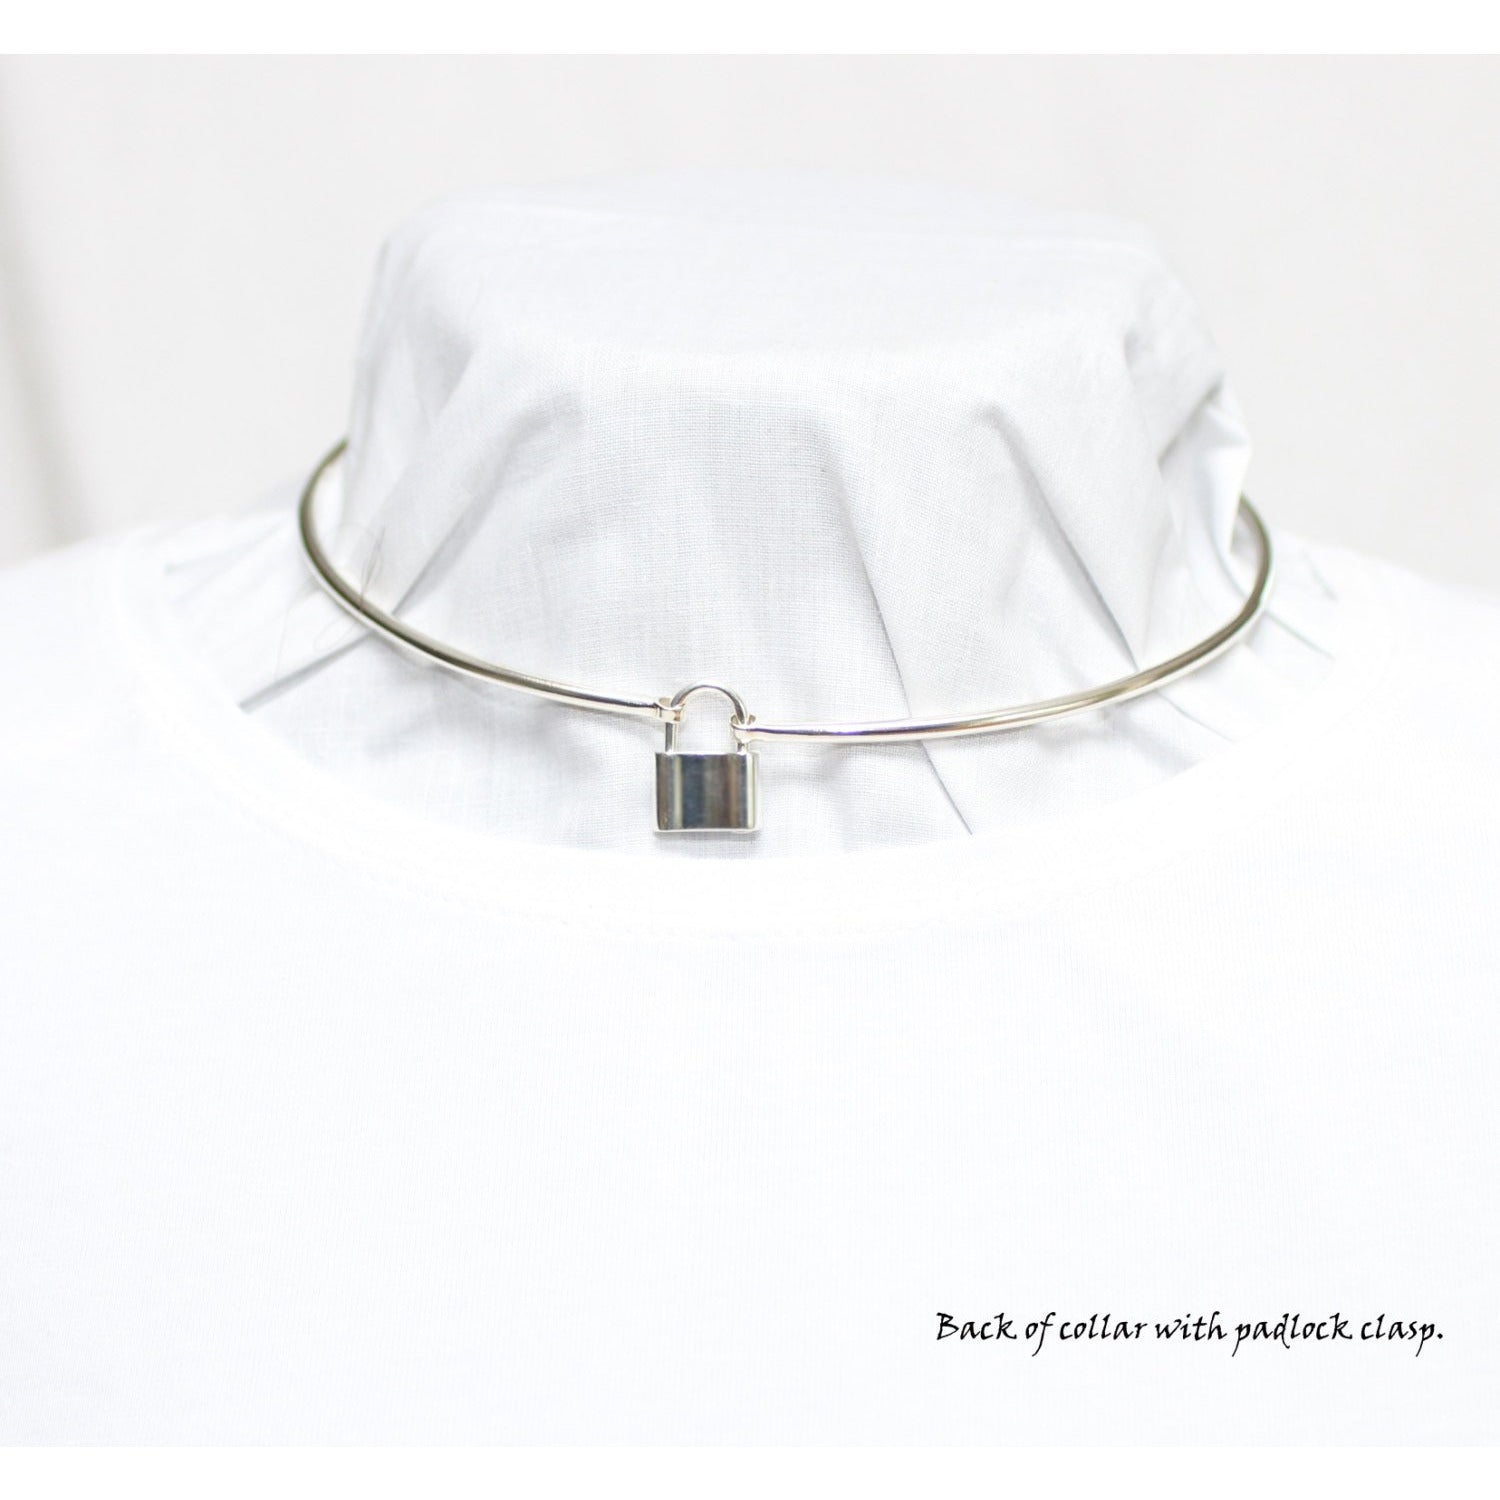 Discreet Folding Day Collar, 3mm sterling silver (8g), Padlock clasp, hinged by front O ring, Handmade BDSM Collar